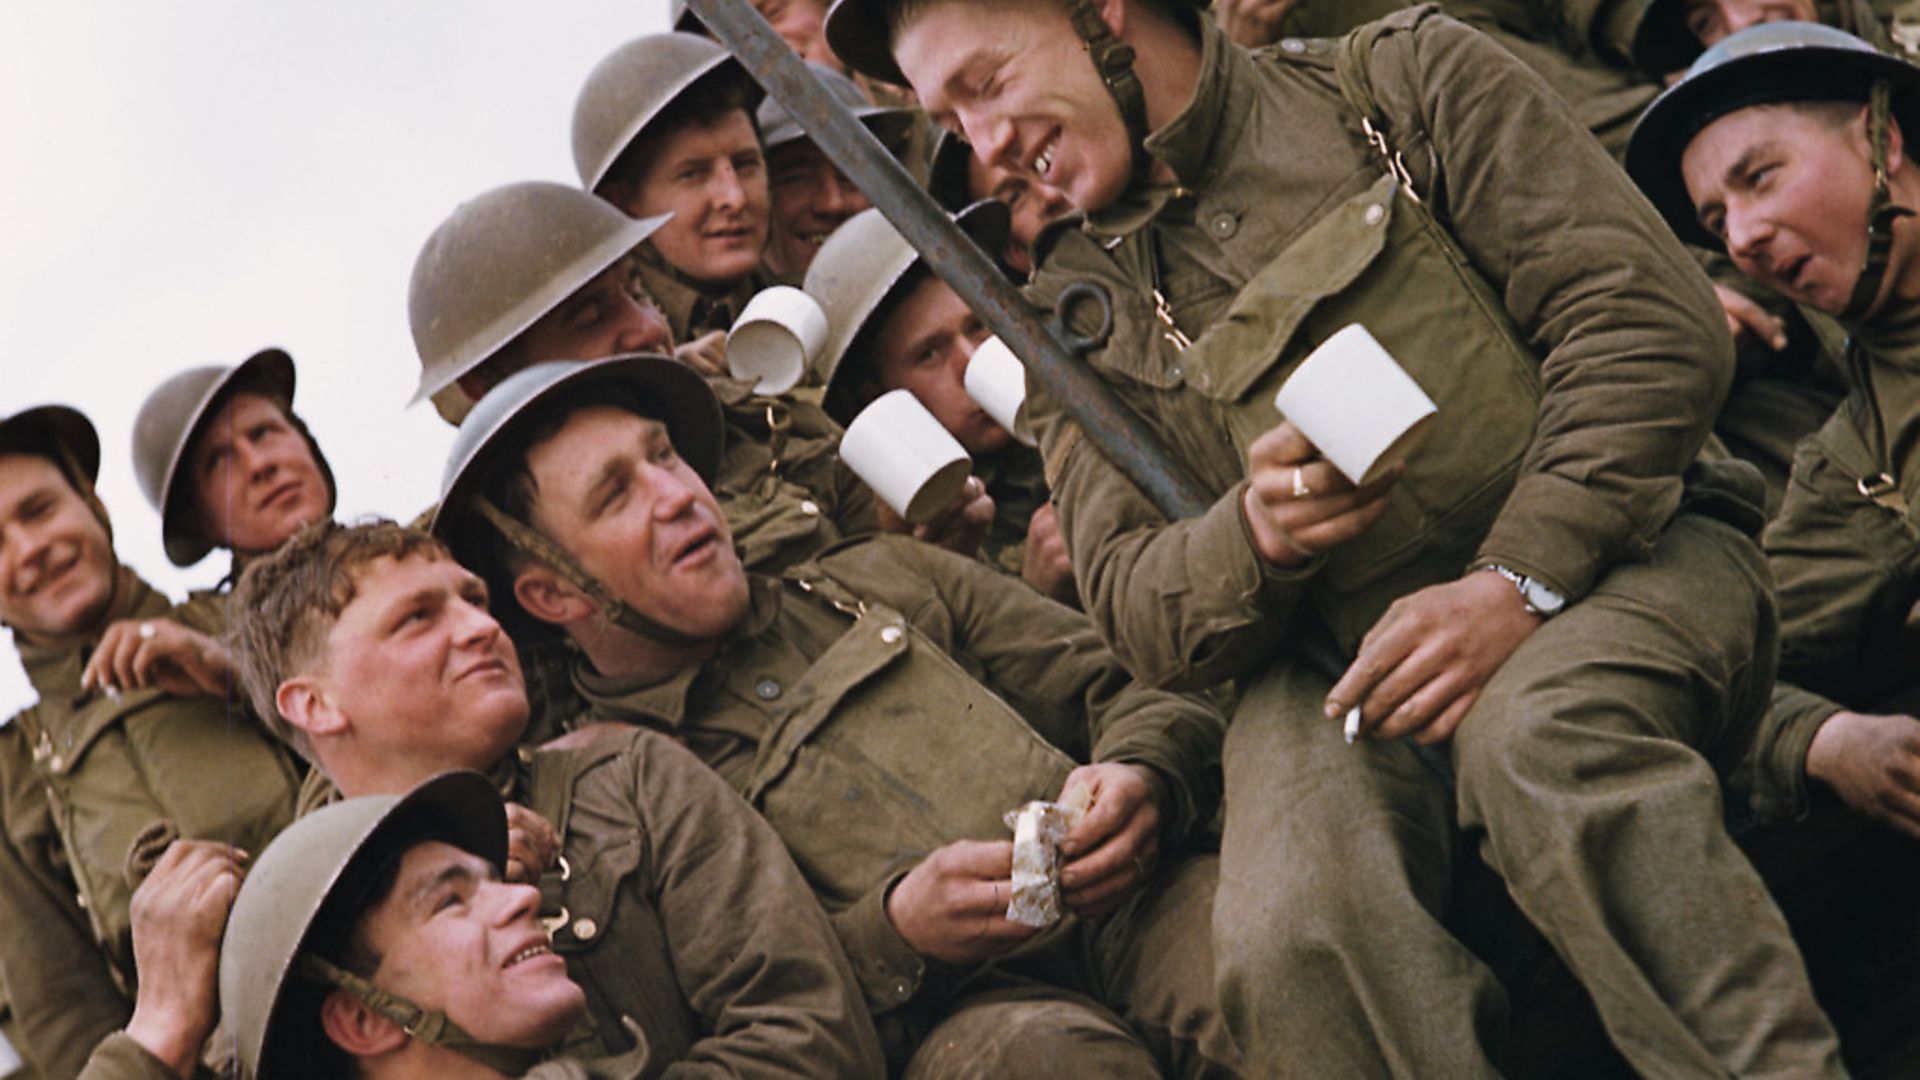 A group of British soldiers having a tea-break, circa 1944. Photo:Fox Photos/Hulton Archive/Getty Images. - Credit: Getty Images